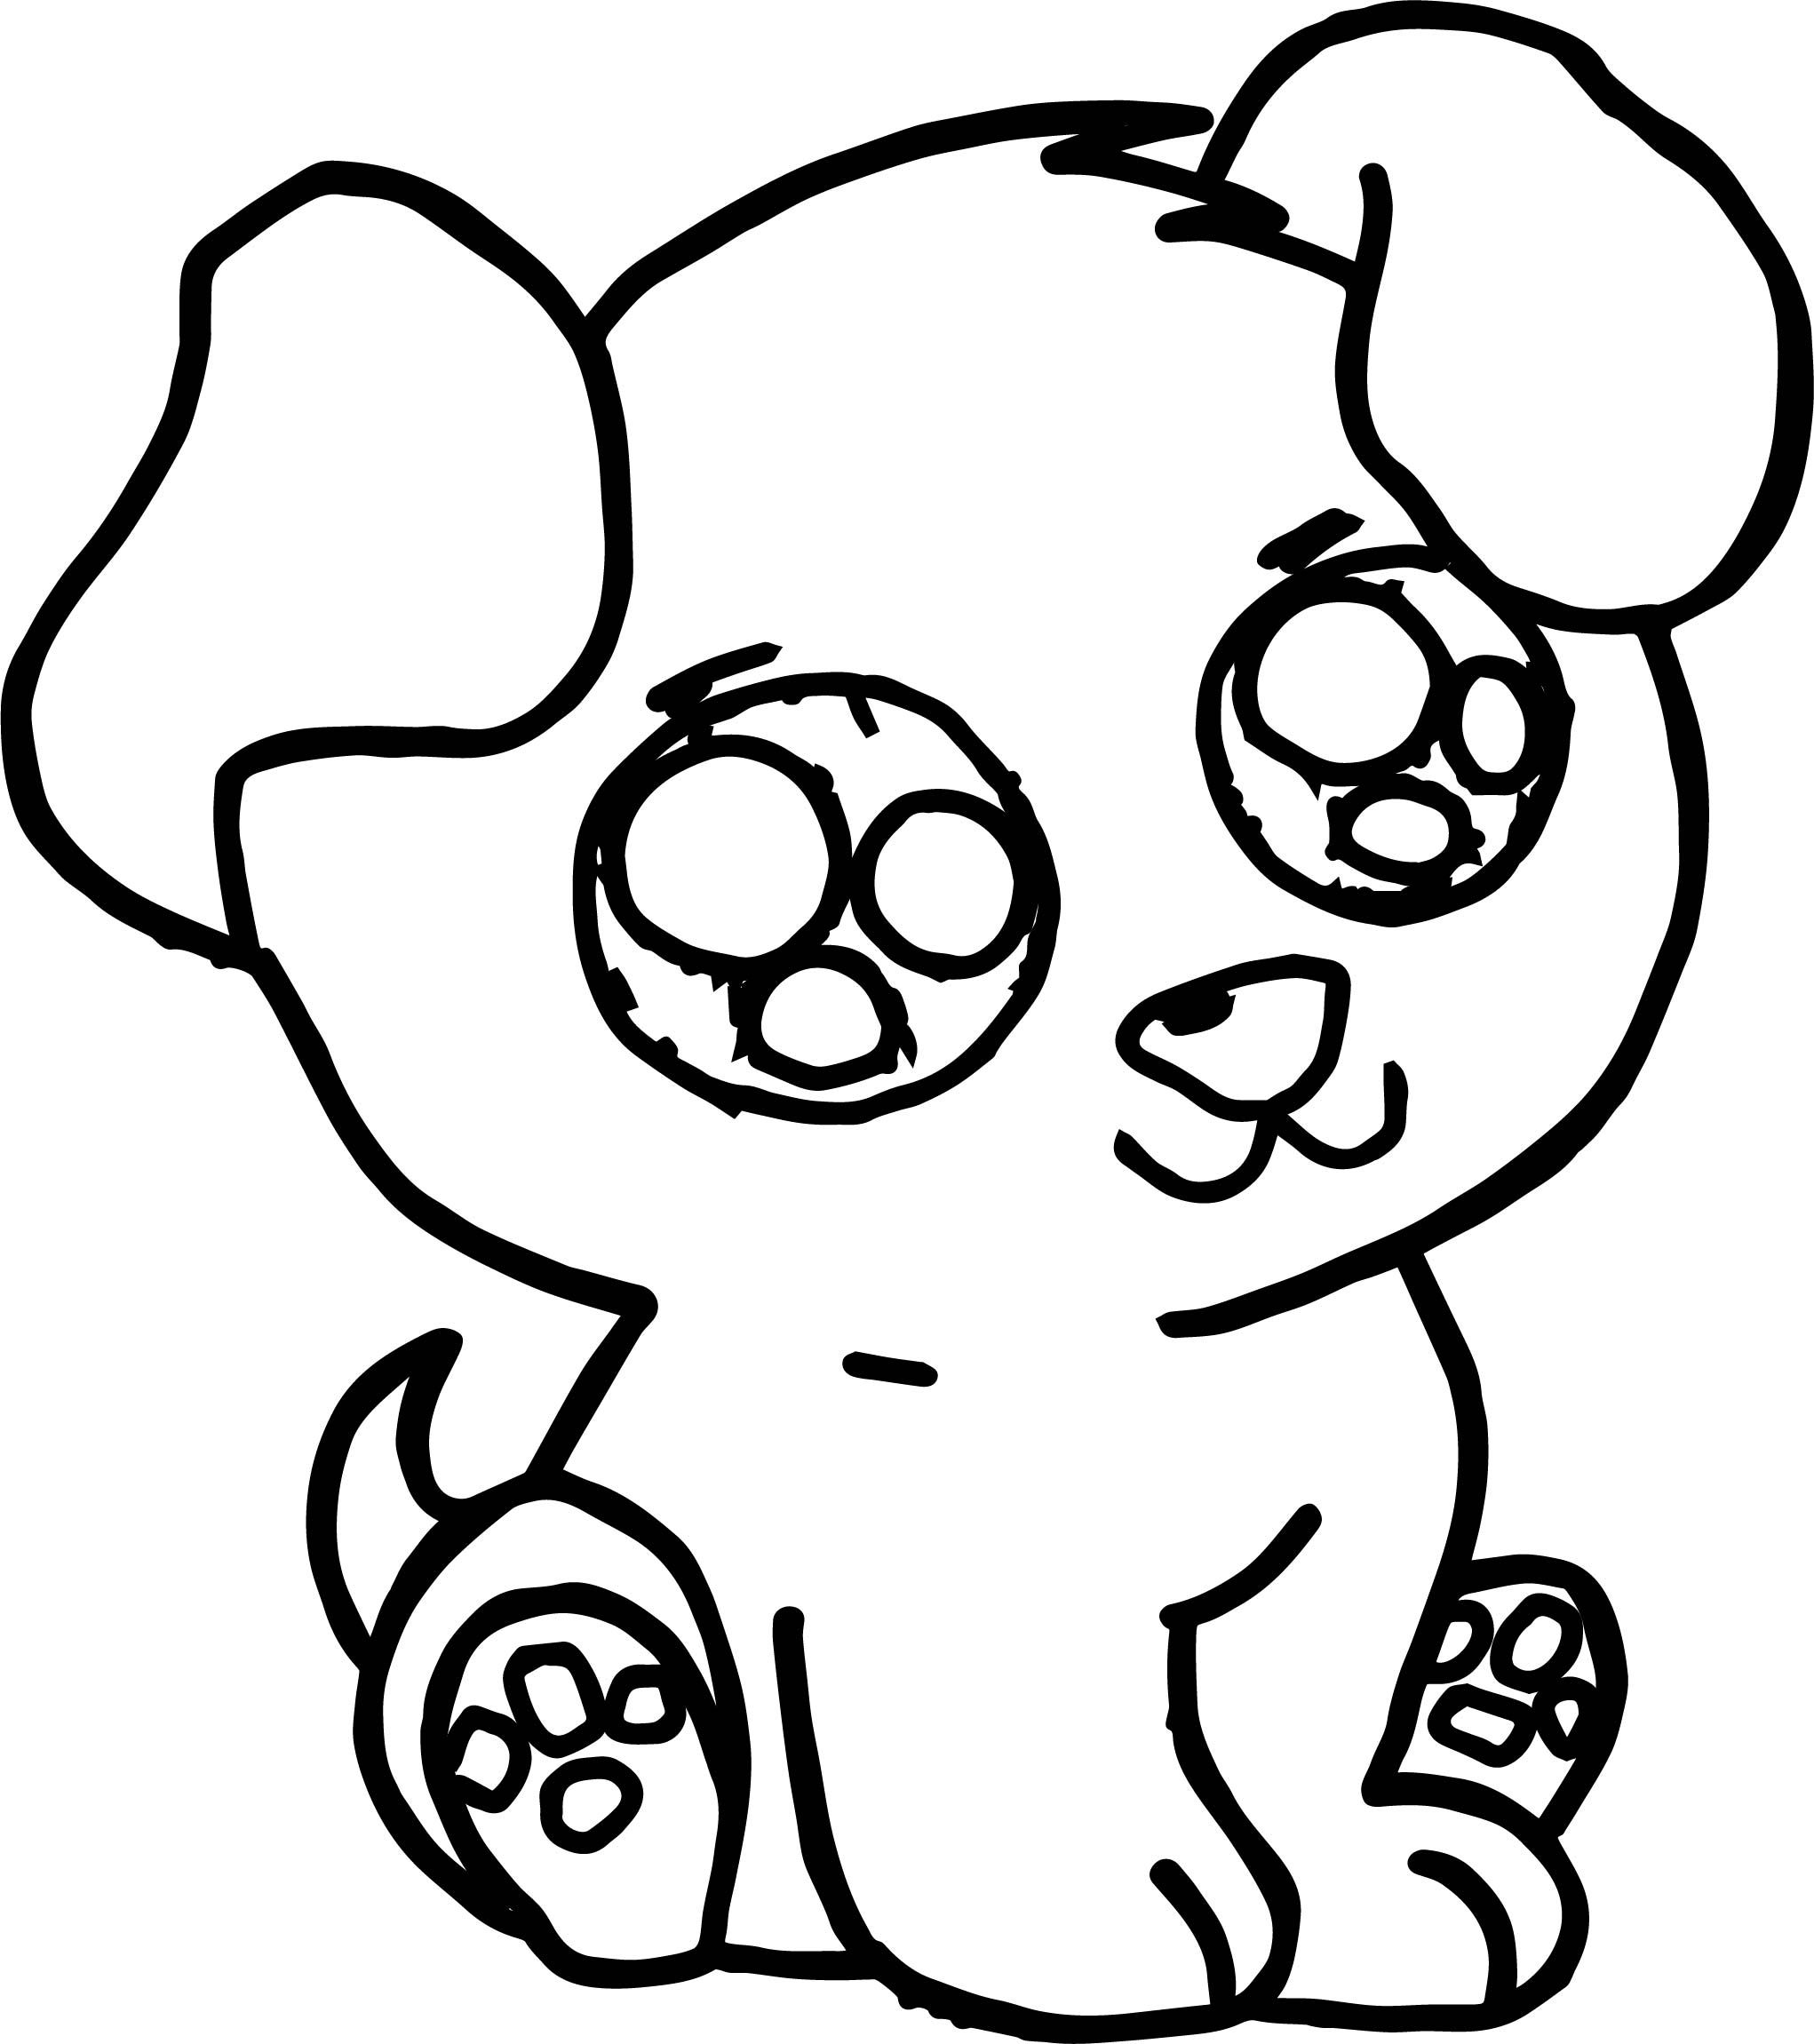 awesome Cute Puppy Free Images Puppy Dog Coloring Page  Puppy